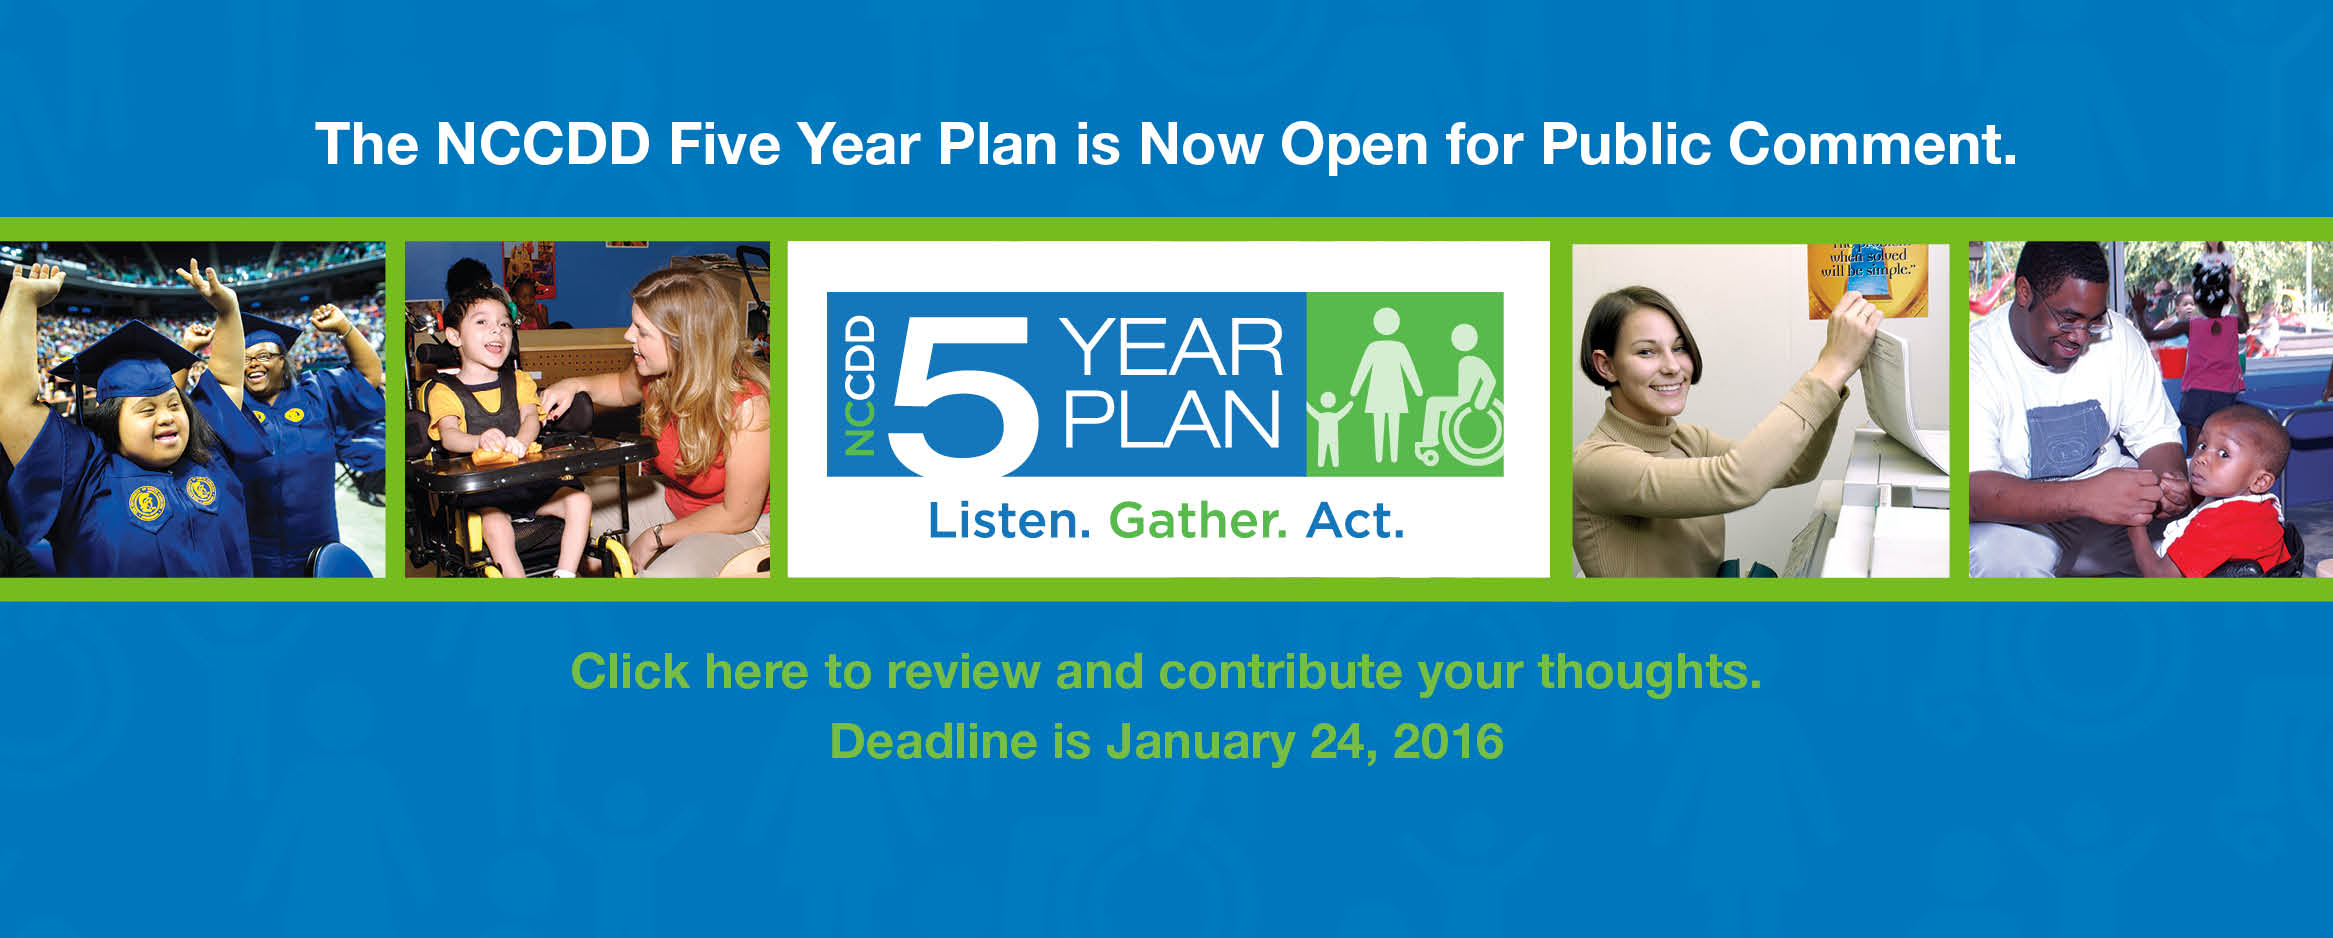 The NCCDD Five Year Plan is Now Open for Public Comment. Click here to review and contribute your thoughts.